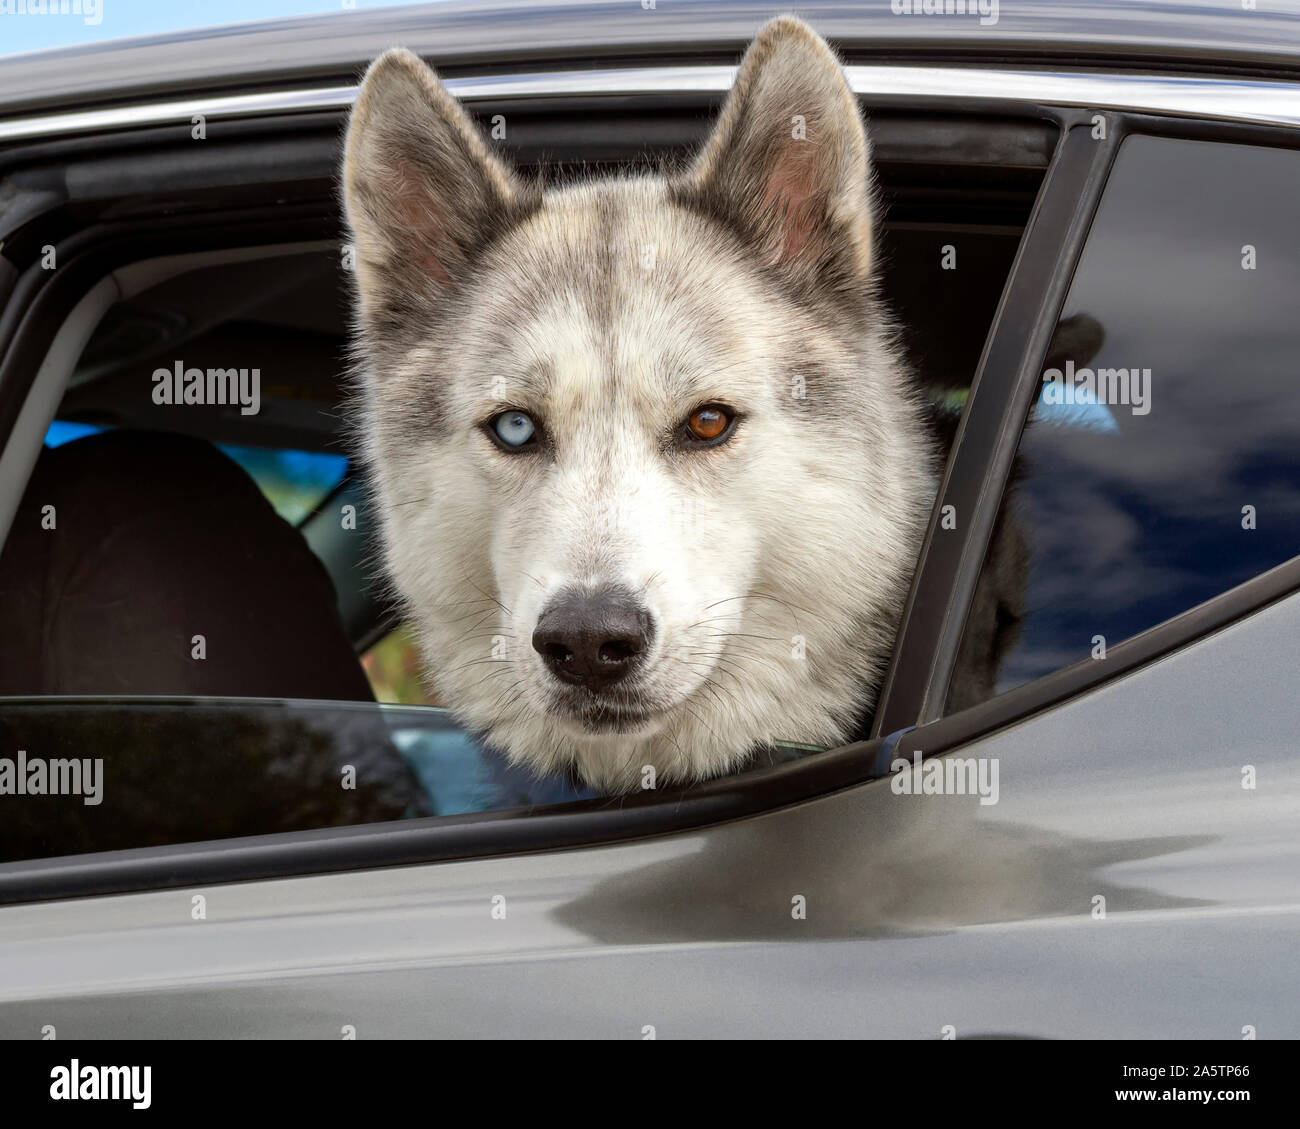 a-siberian-husky-with-one-blue-eye-and-one-brown-eye-heterochromia-sticking-its-head-out-the-rear-window-of-a-parked-car-2A5TP66.jpg